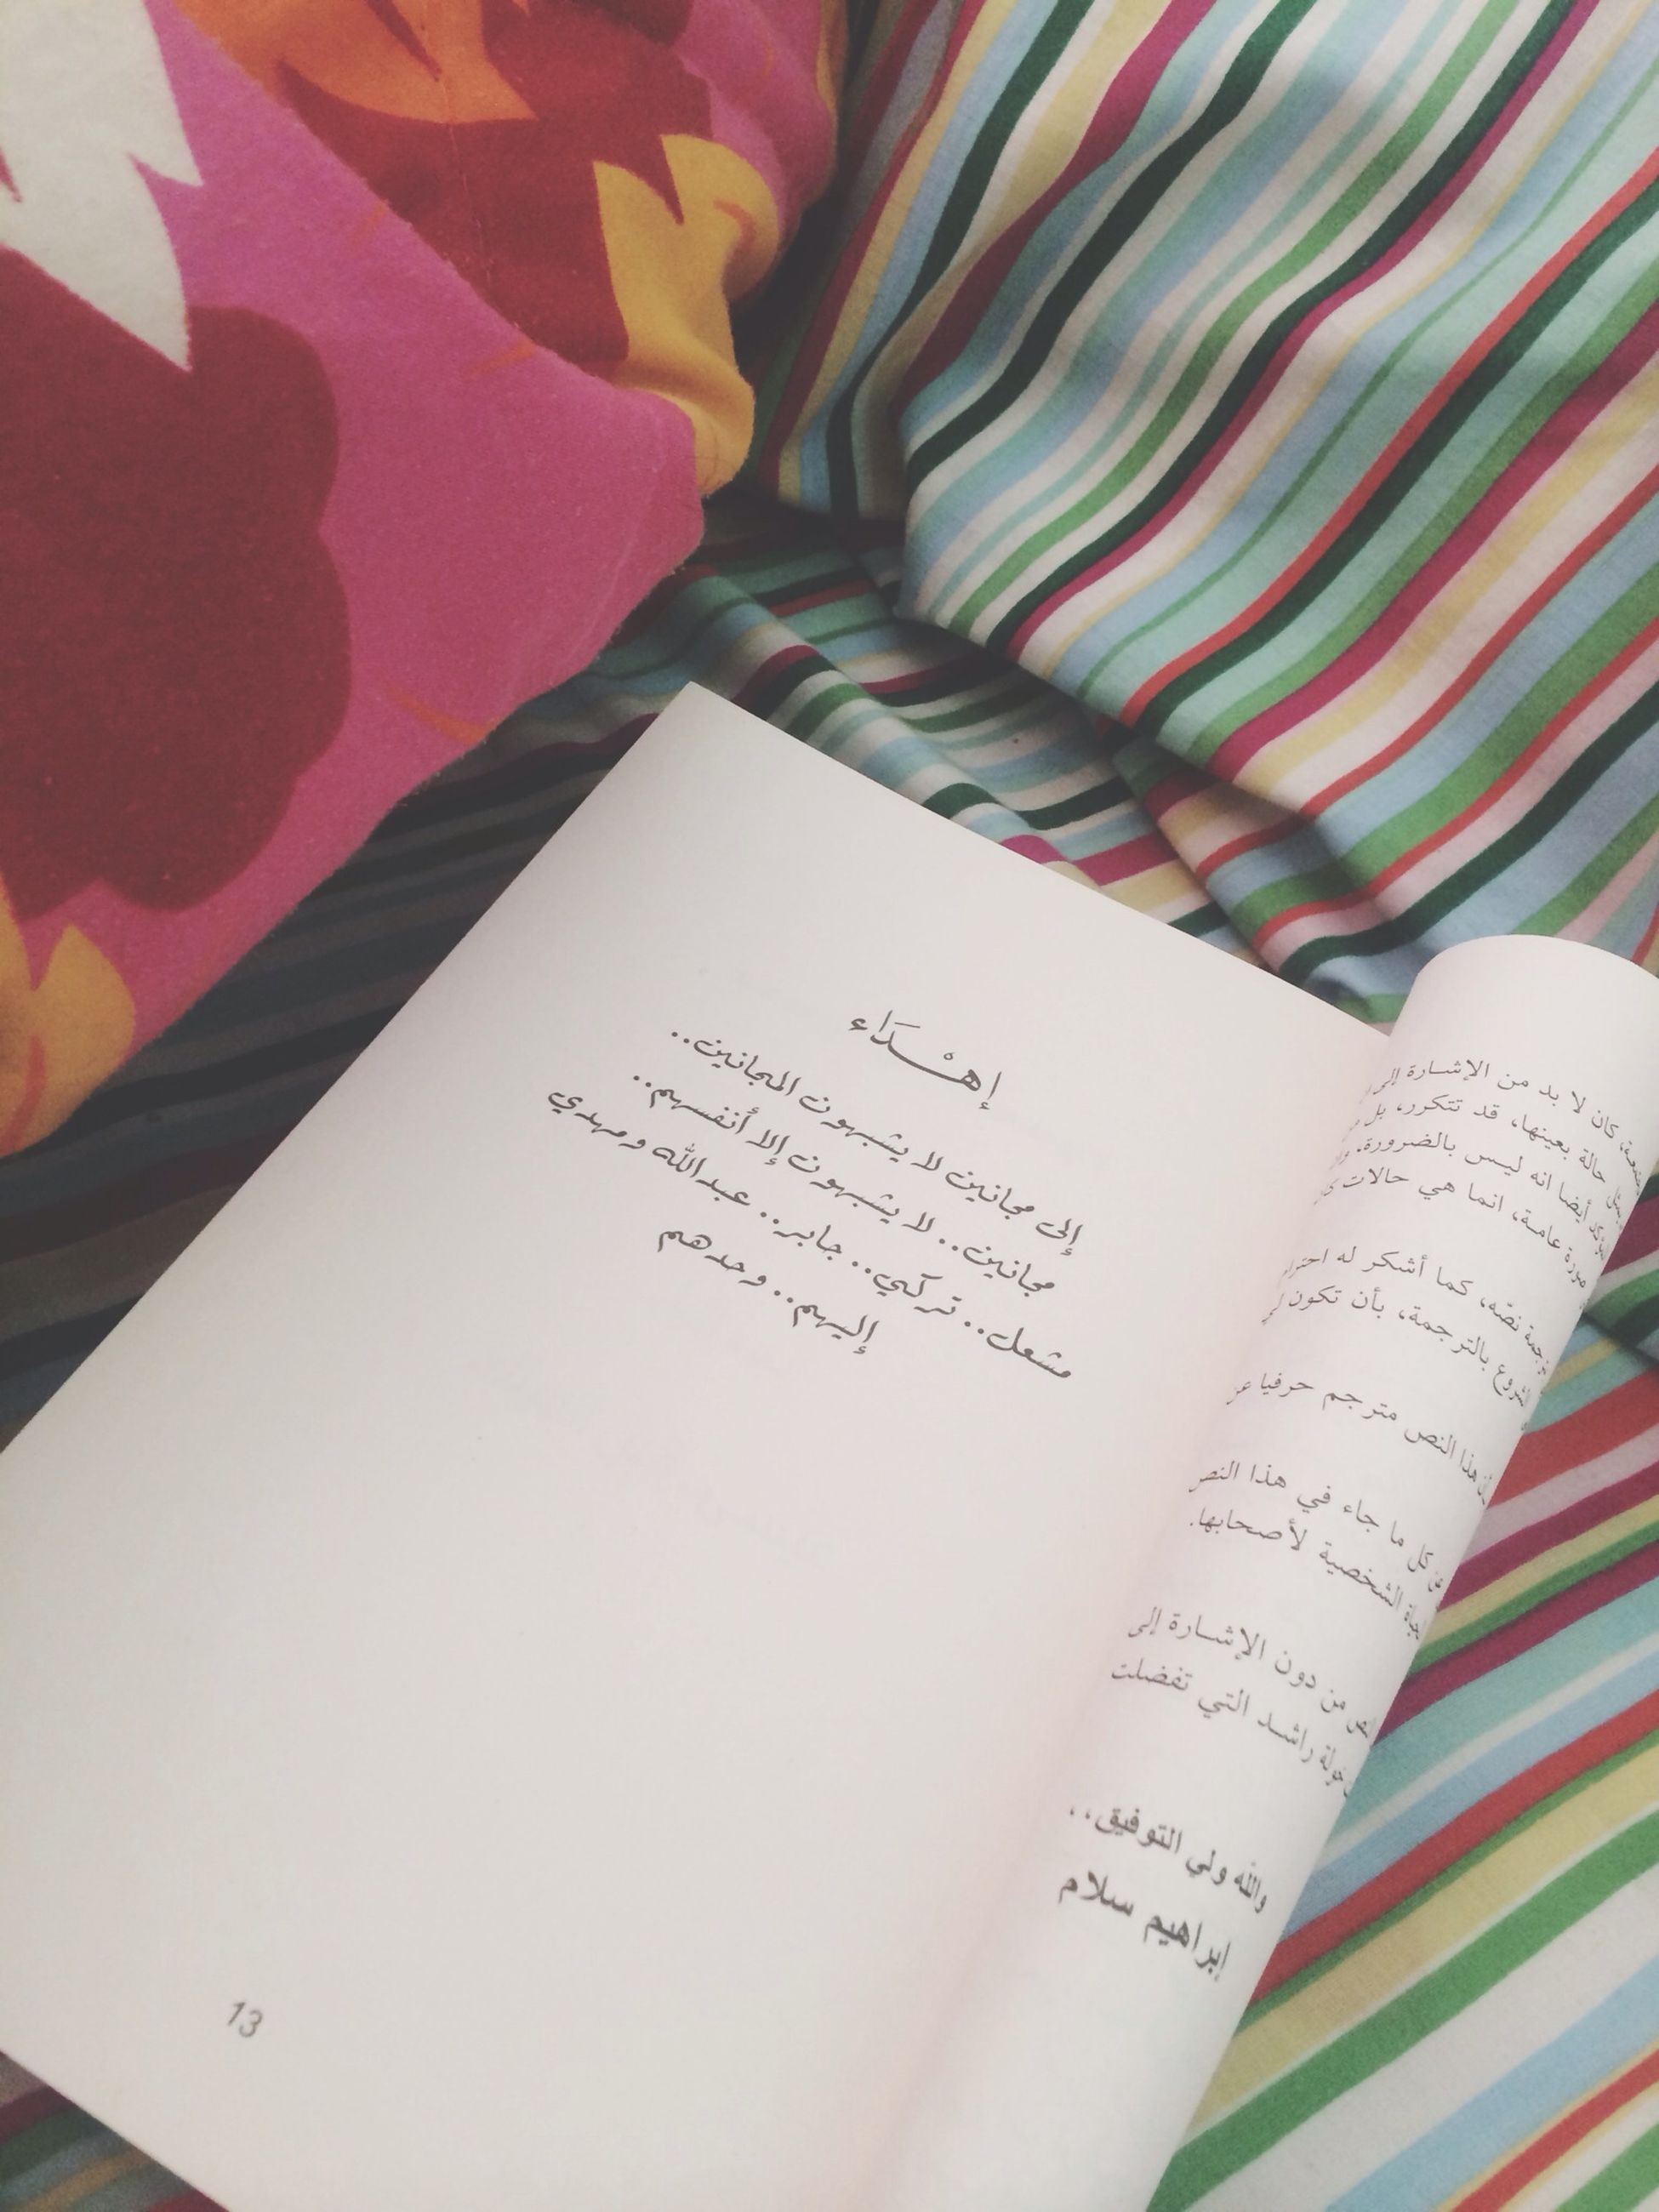 text, indoors, paper, western script, book, communication, education, close-up, high angle view, page, still life, pen, cropped, no people, part of, pencil, handwriting, table, document, message